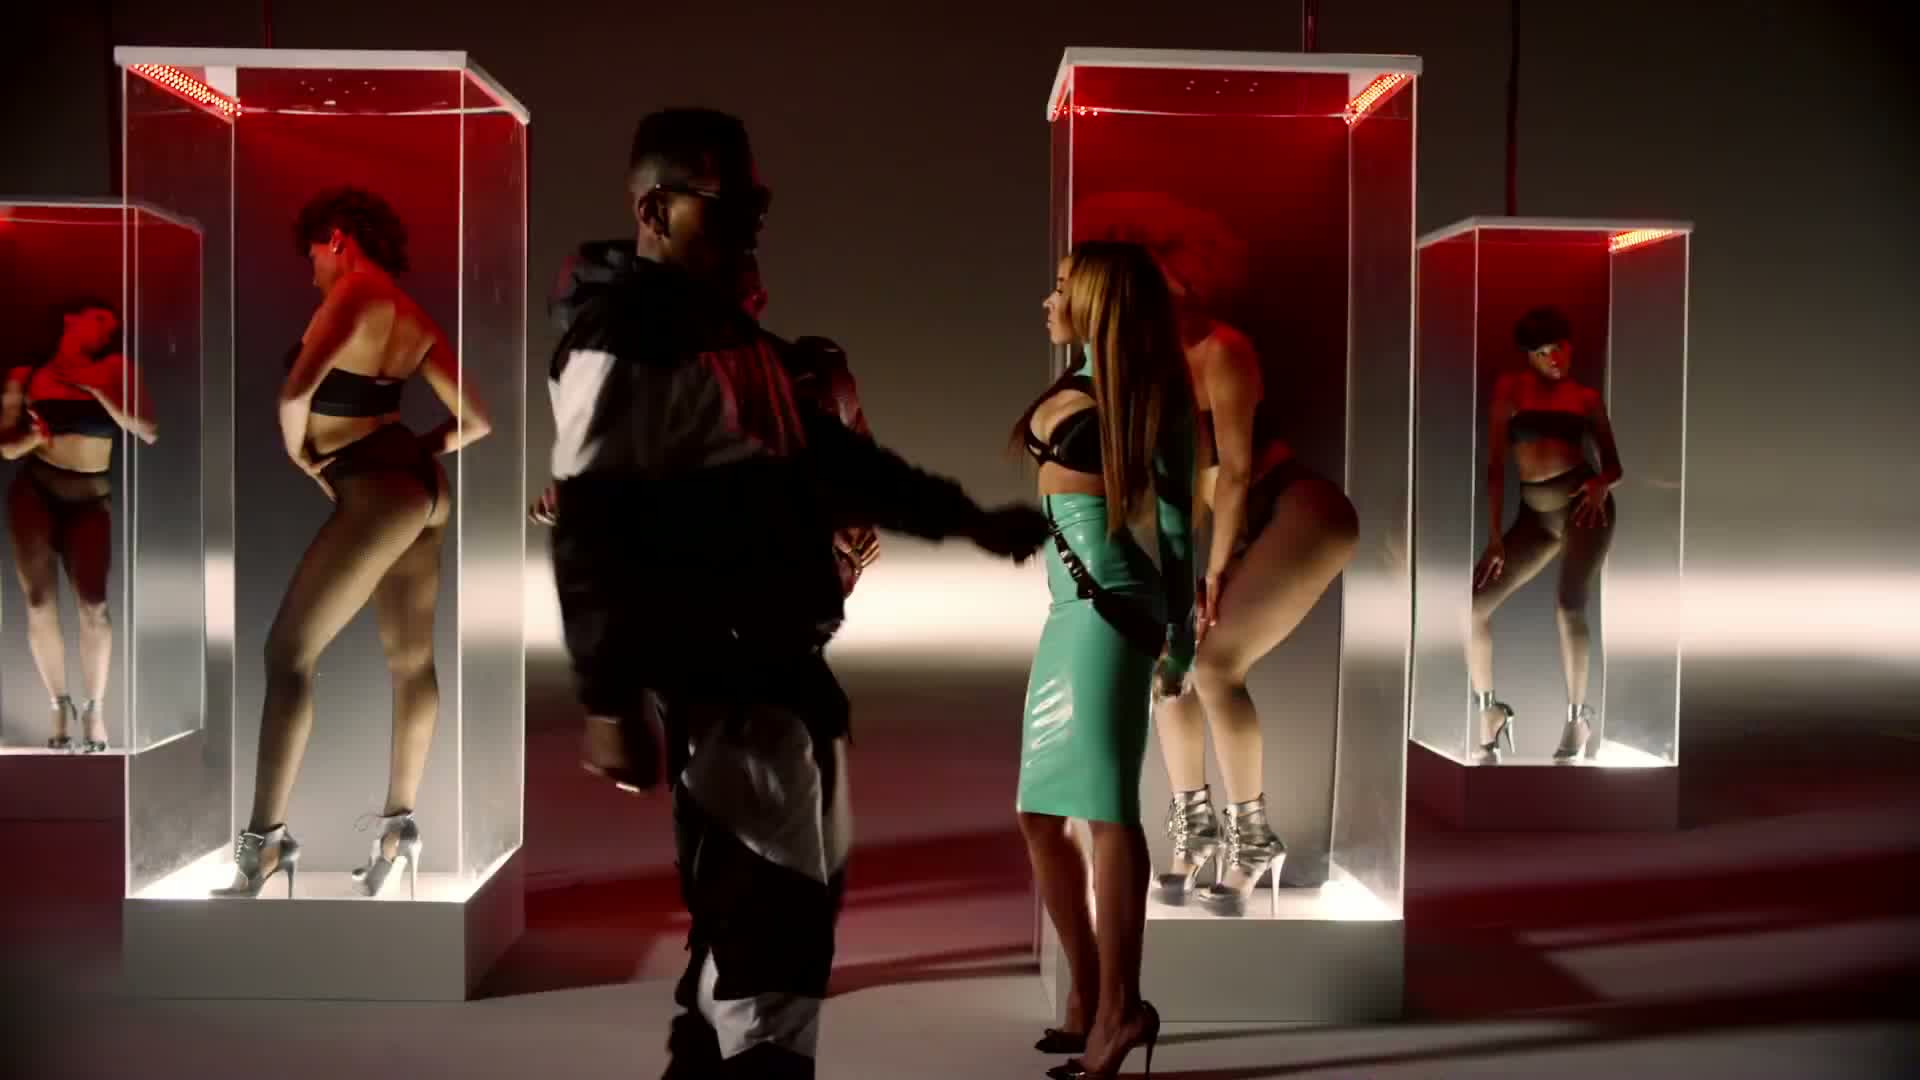 Kid Ink Ft. Usher & Tinashe - Body Language